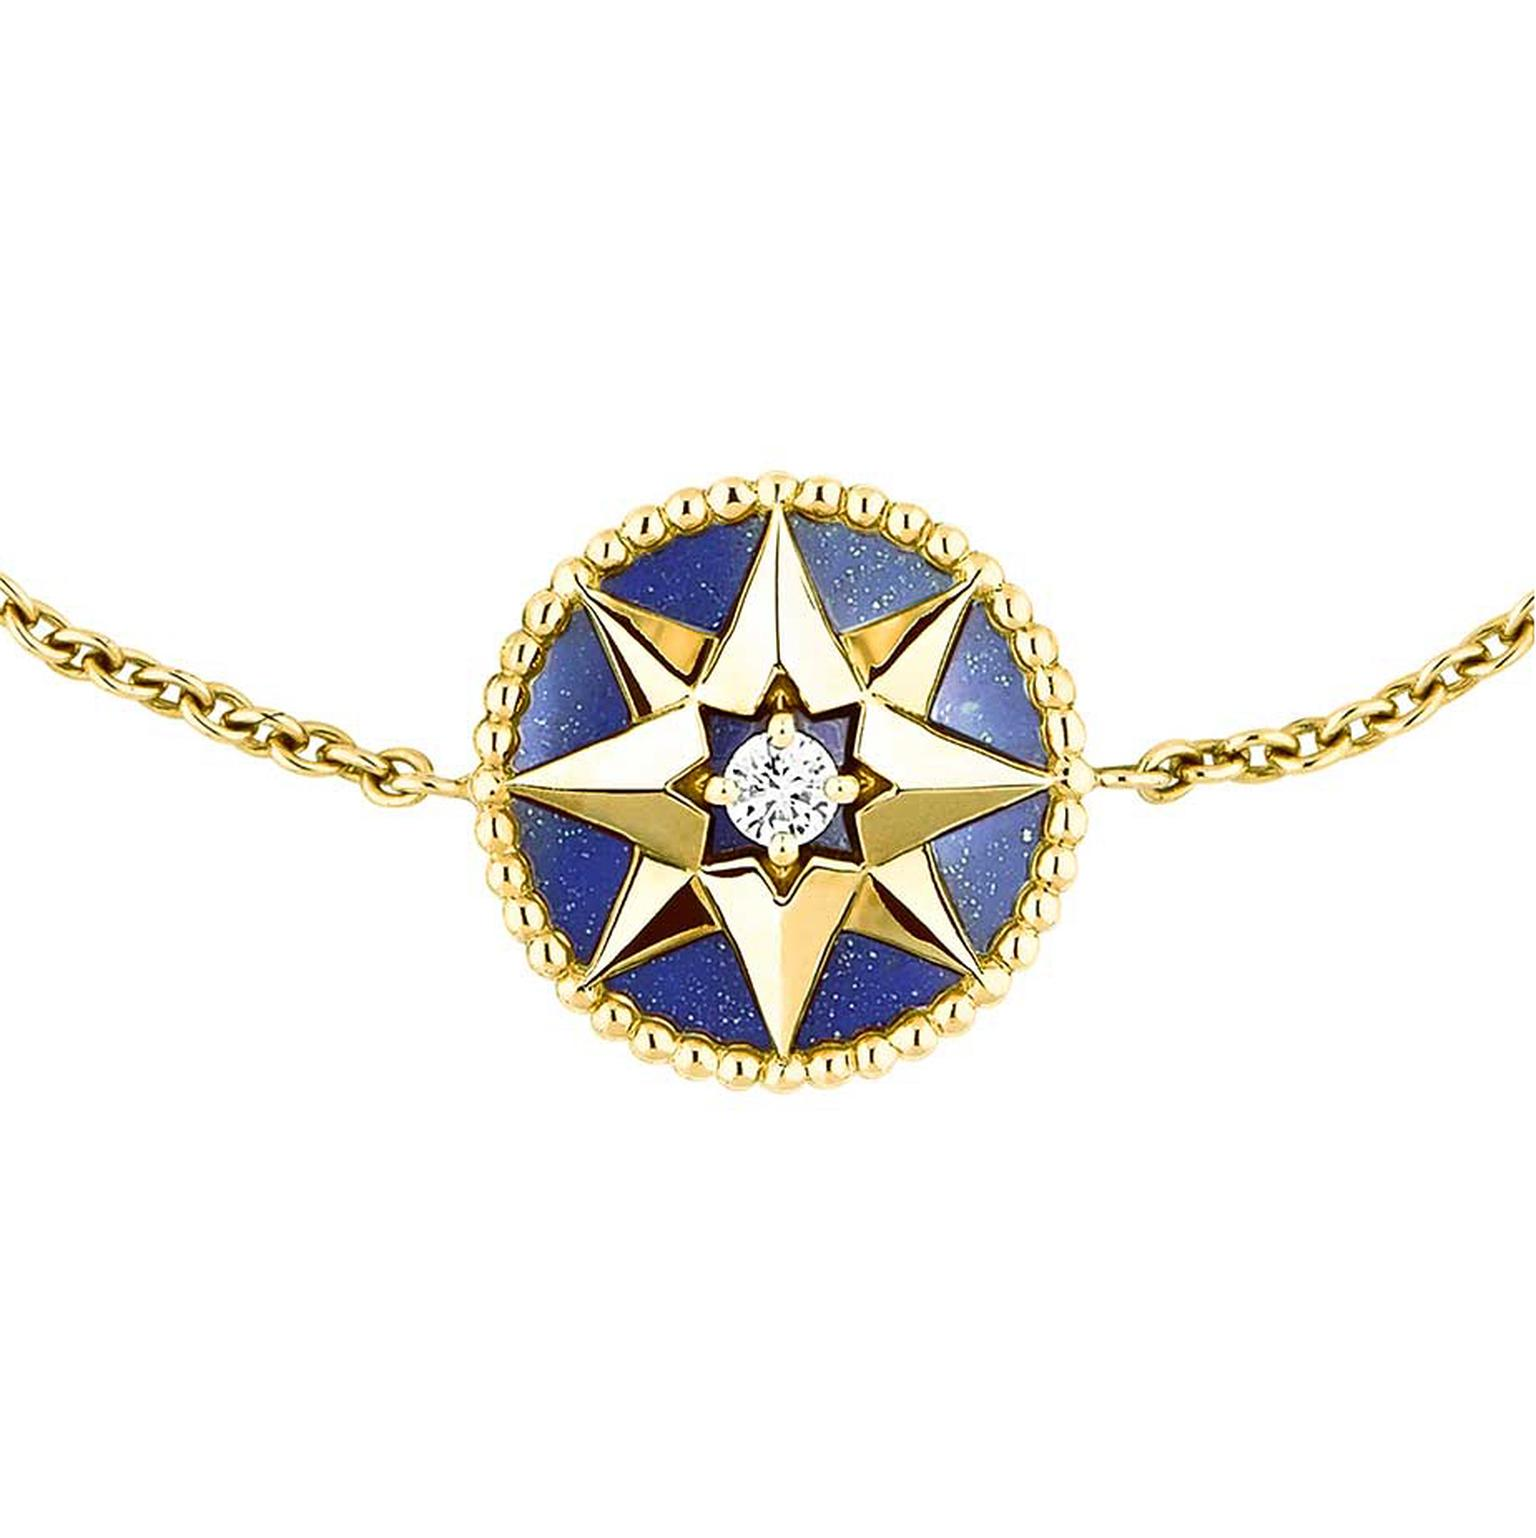 Dior Rose des Vents bracelet in yellow gold and lapis lazuli, set with a central round brilliant diamond.